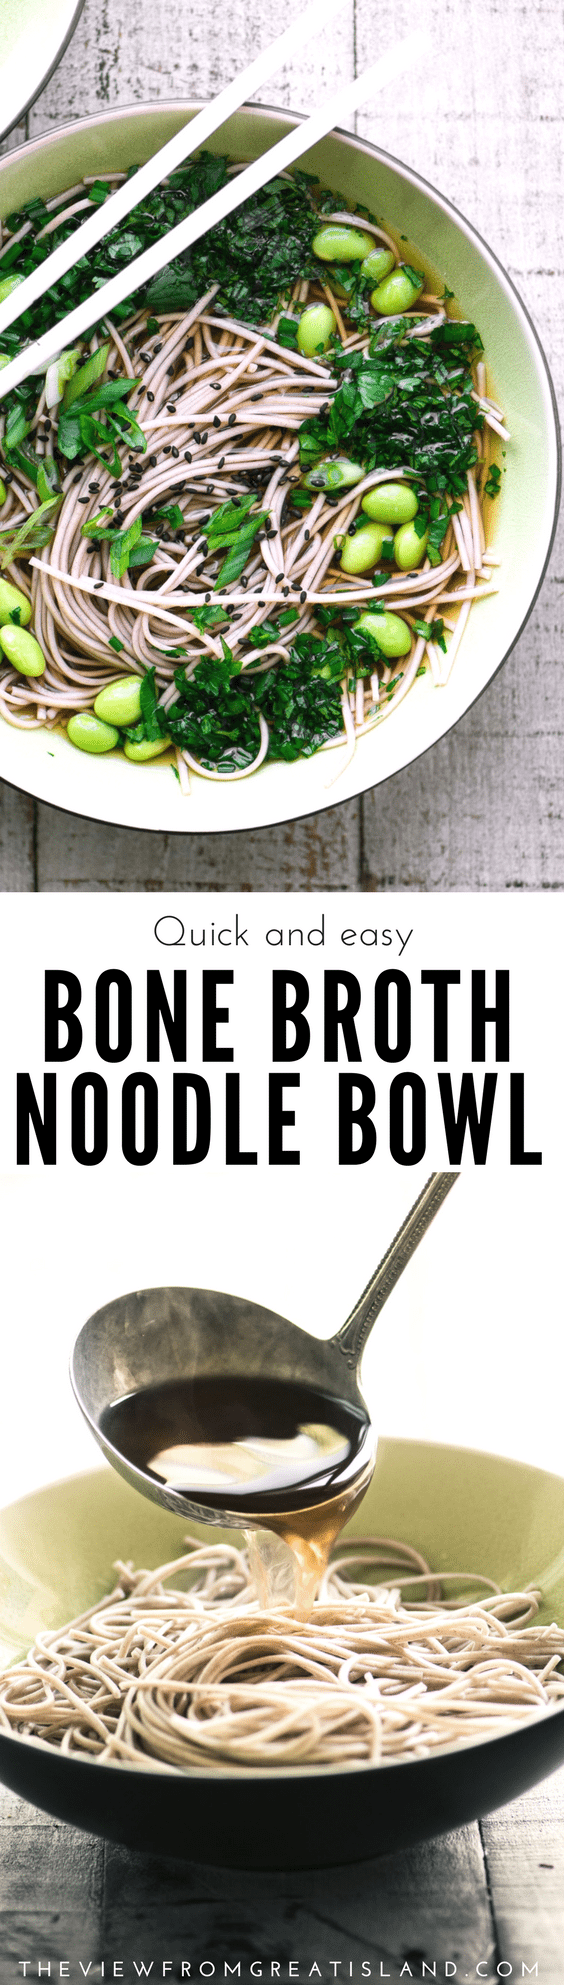 Easy Bone Broth Noodle Bowl with Herbs pin